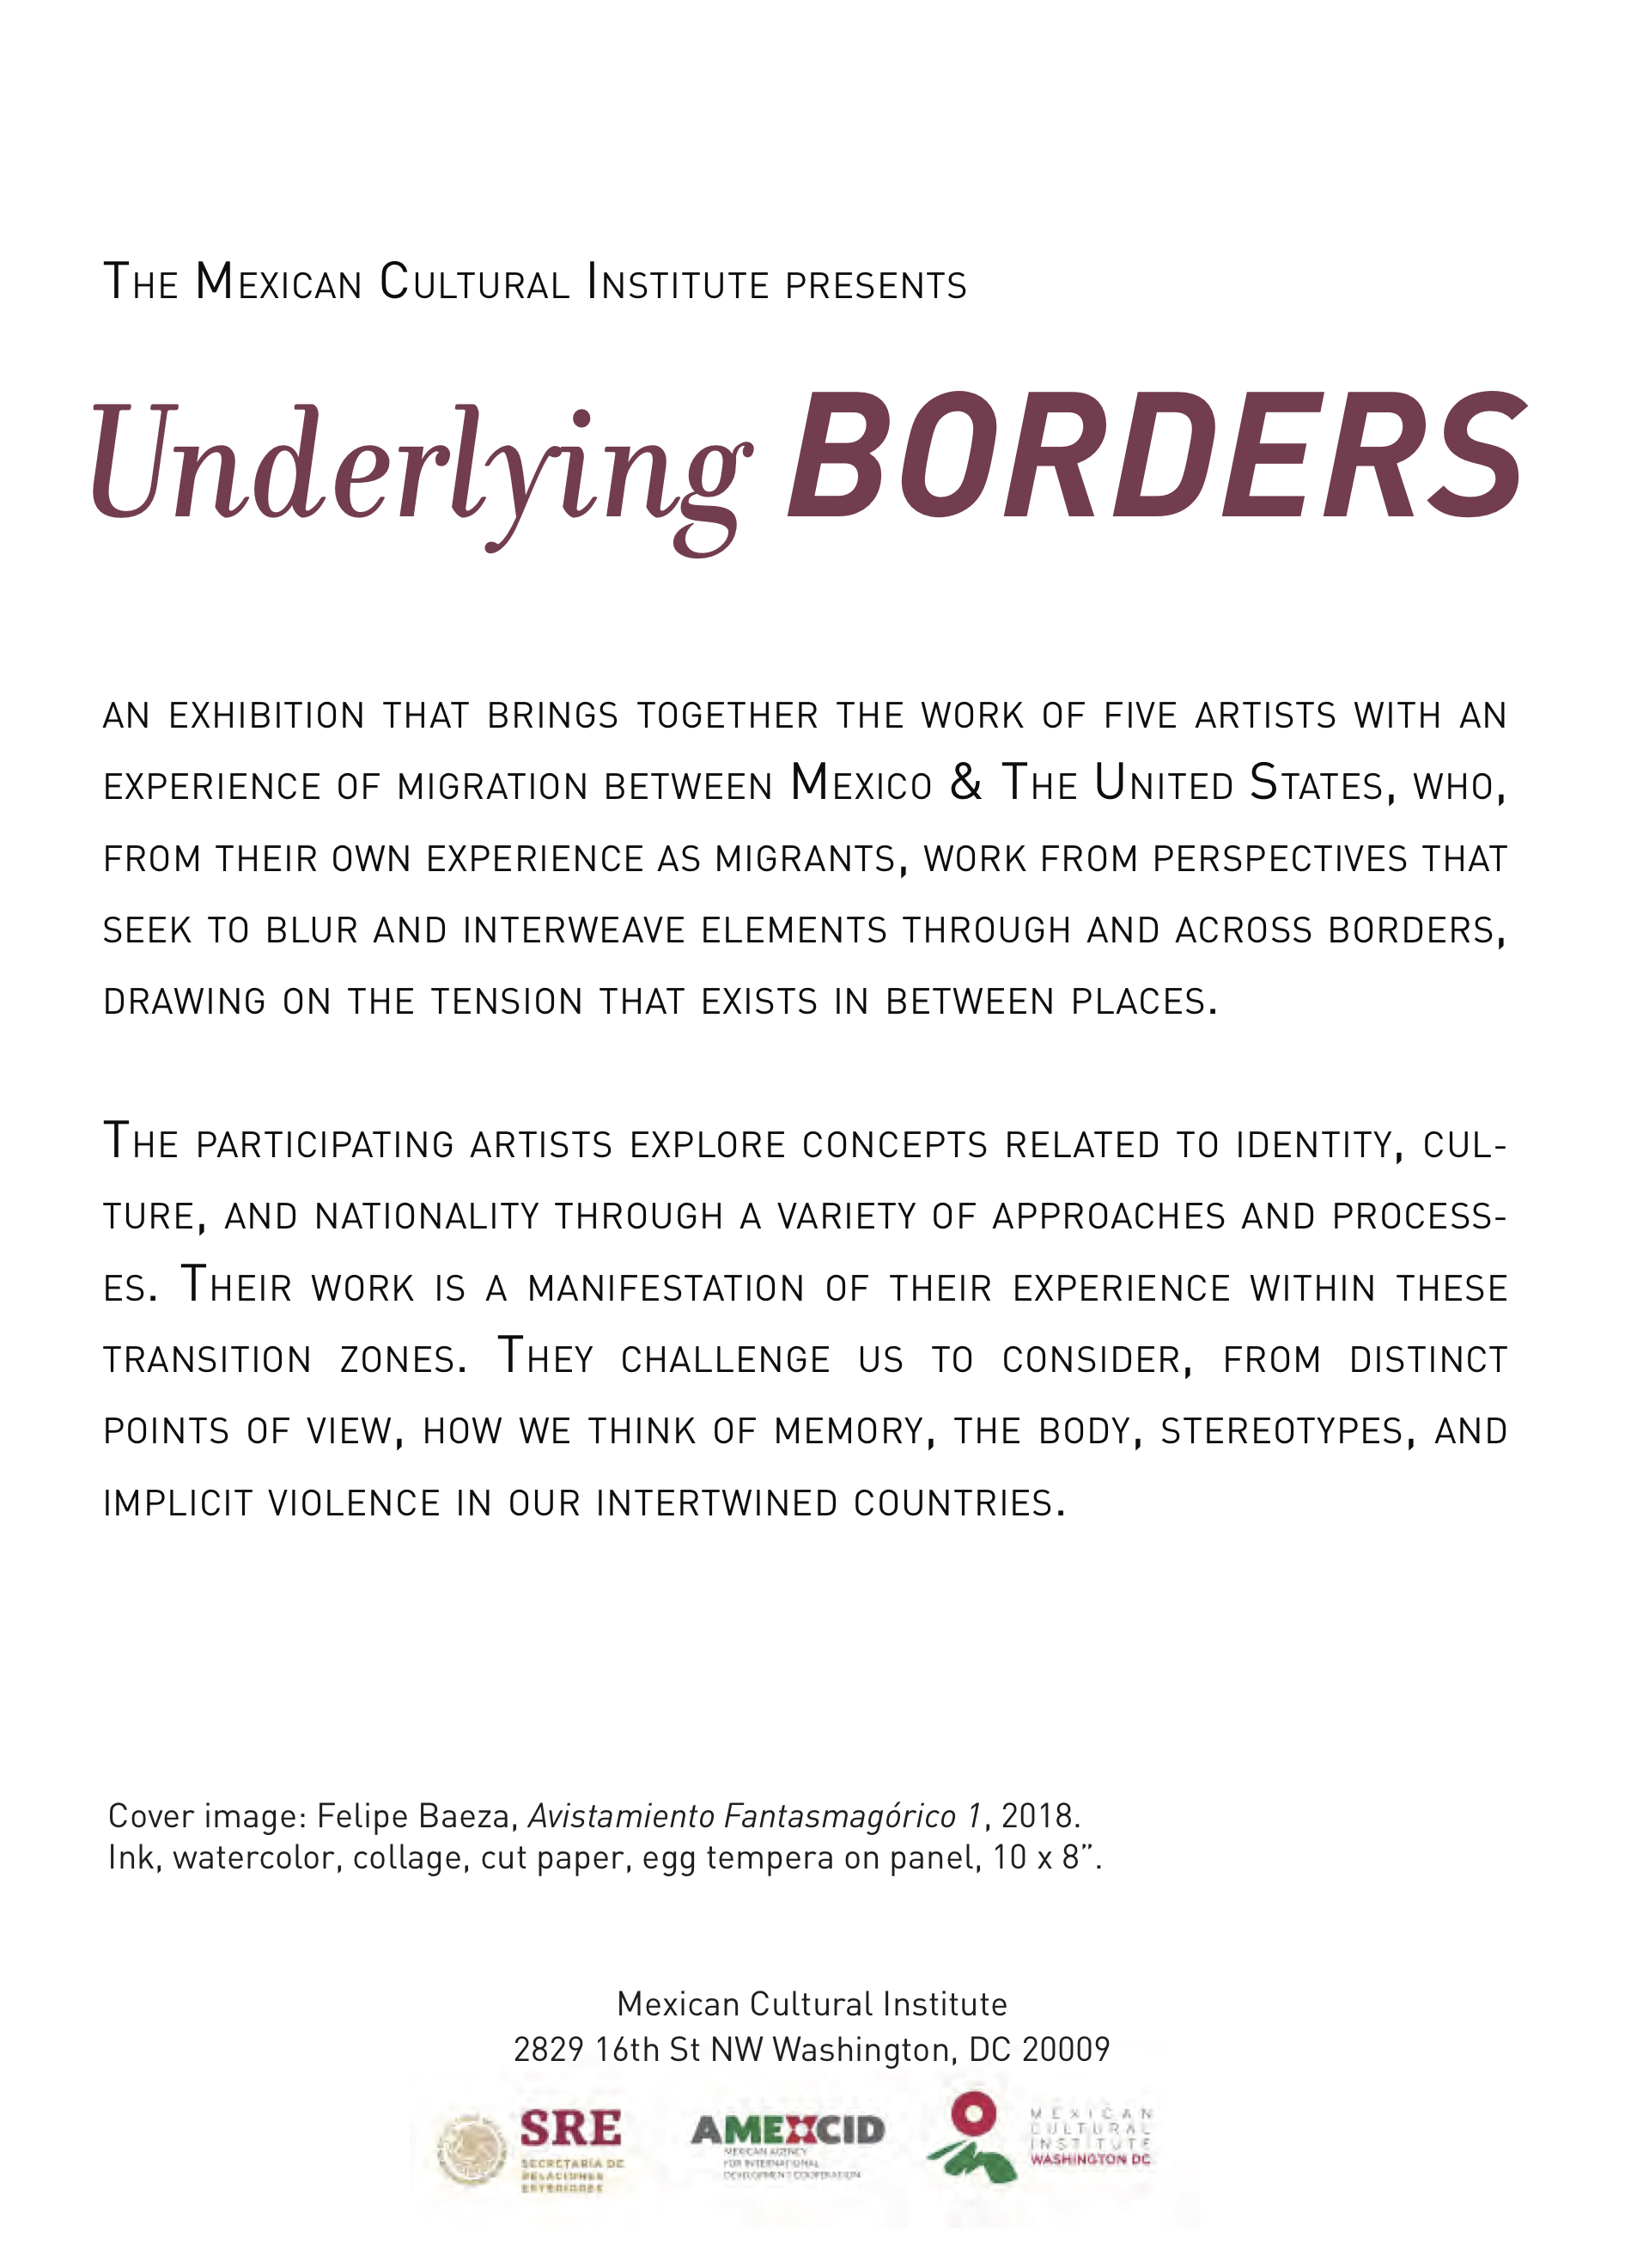 UnderlyingBorders_Invite_final2 (1).jpg